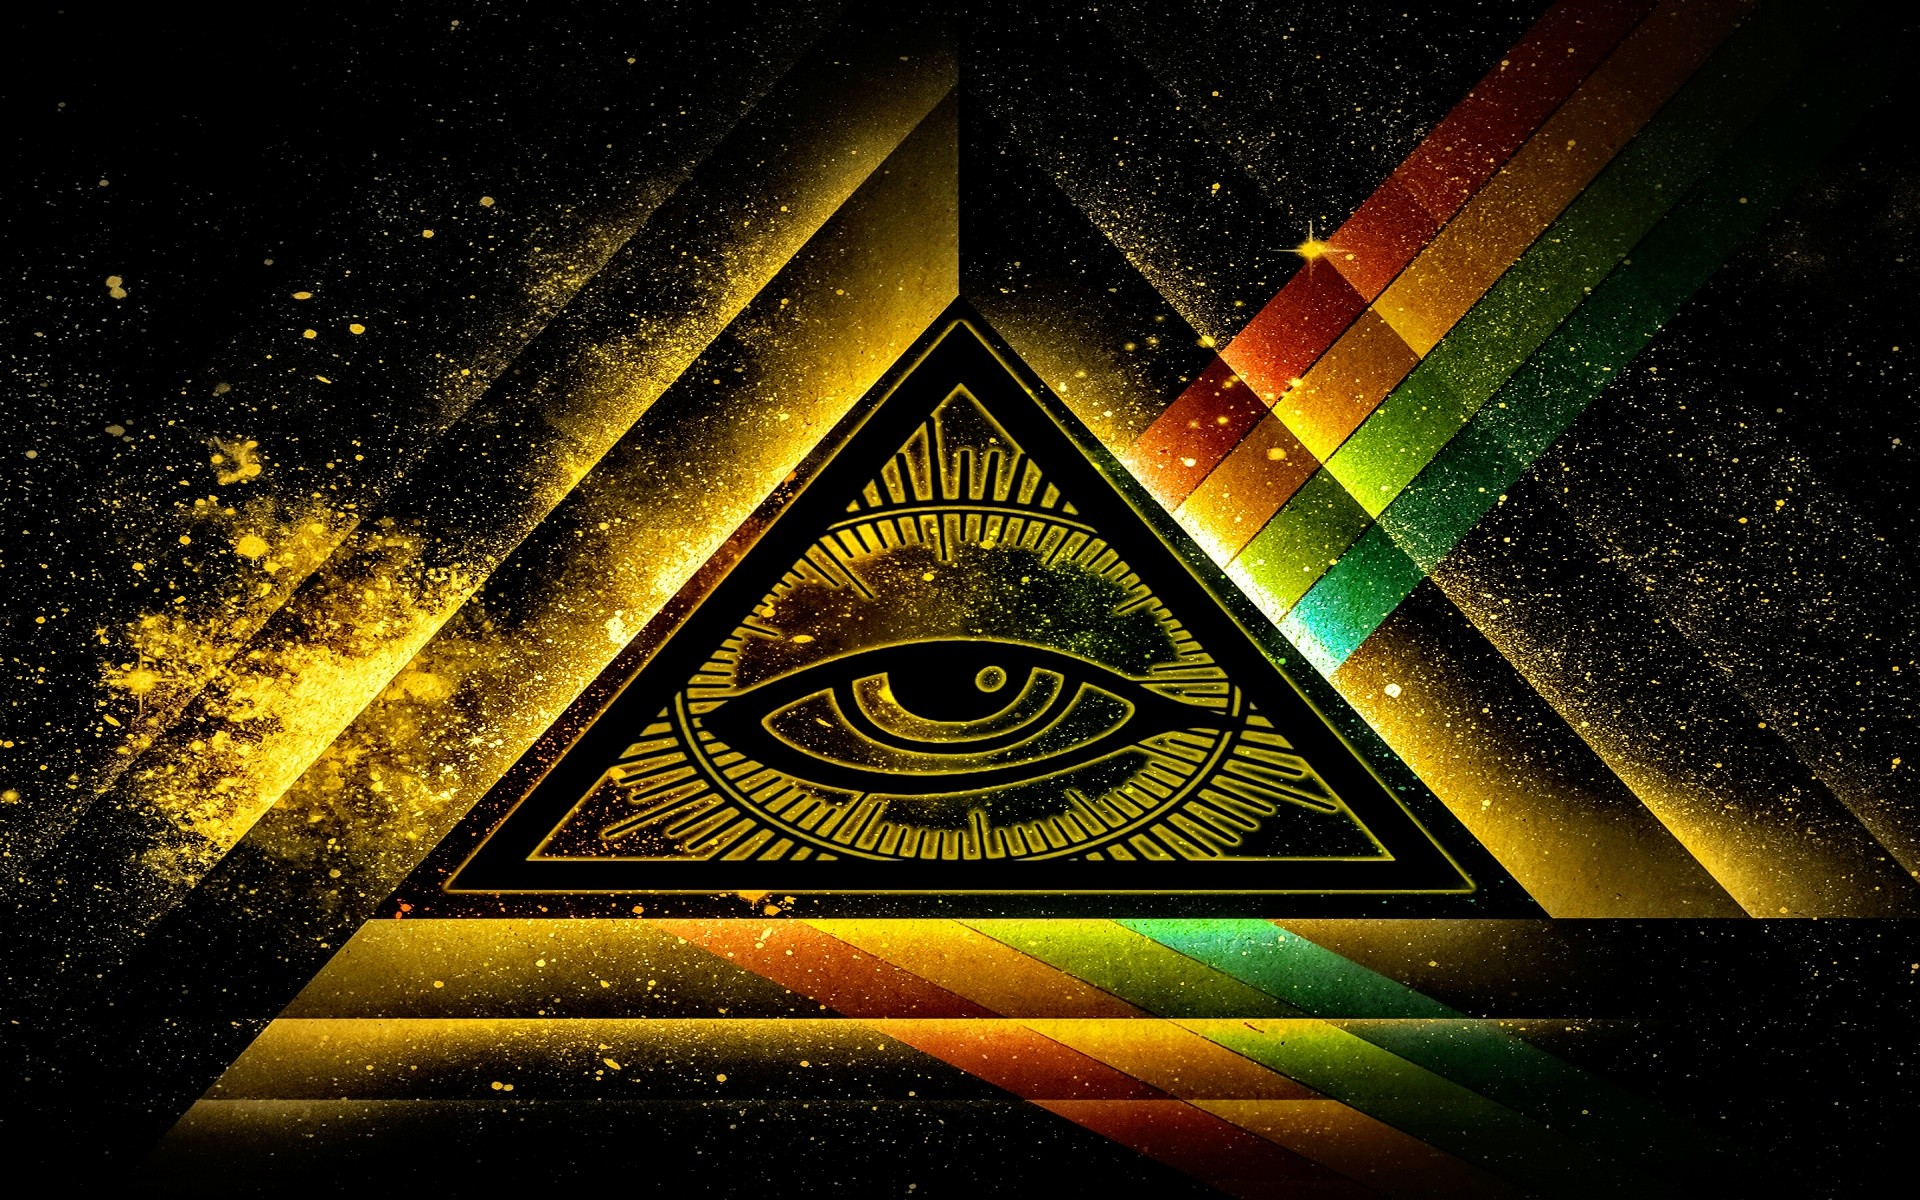 1920x1200 illuminati wallpaper Tumblr | HD Wallpapers | Pinterest | Illuminati, Hd  wallpaper and Wallpaper